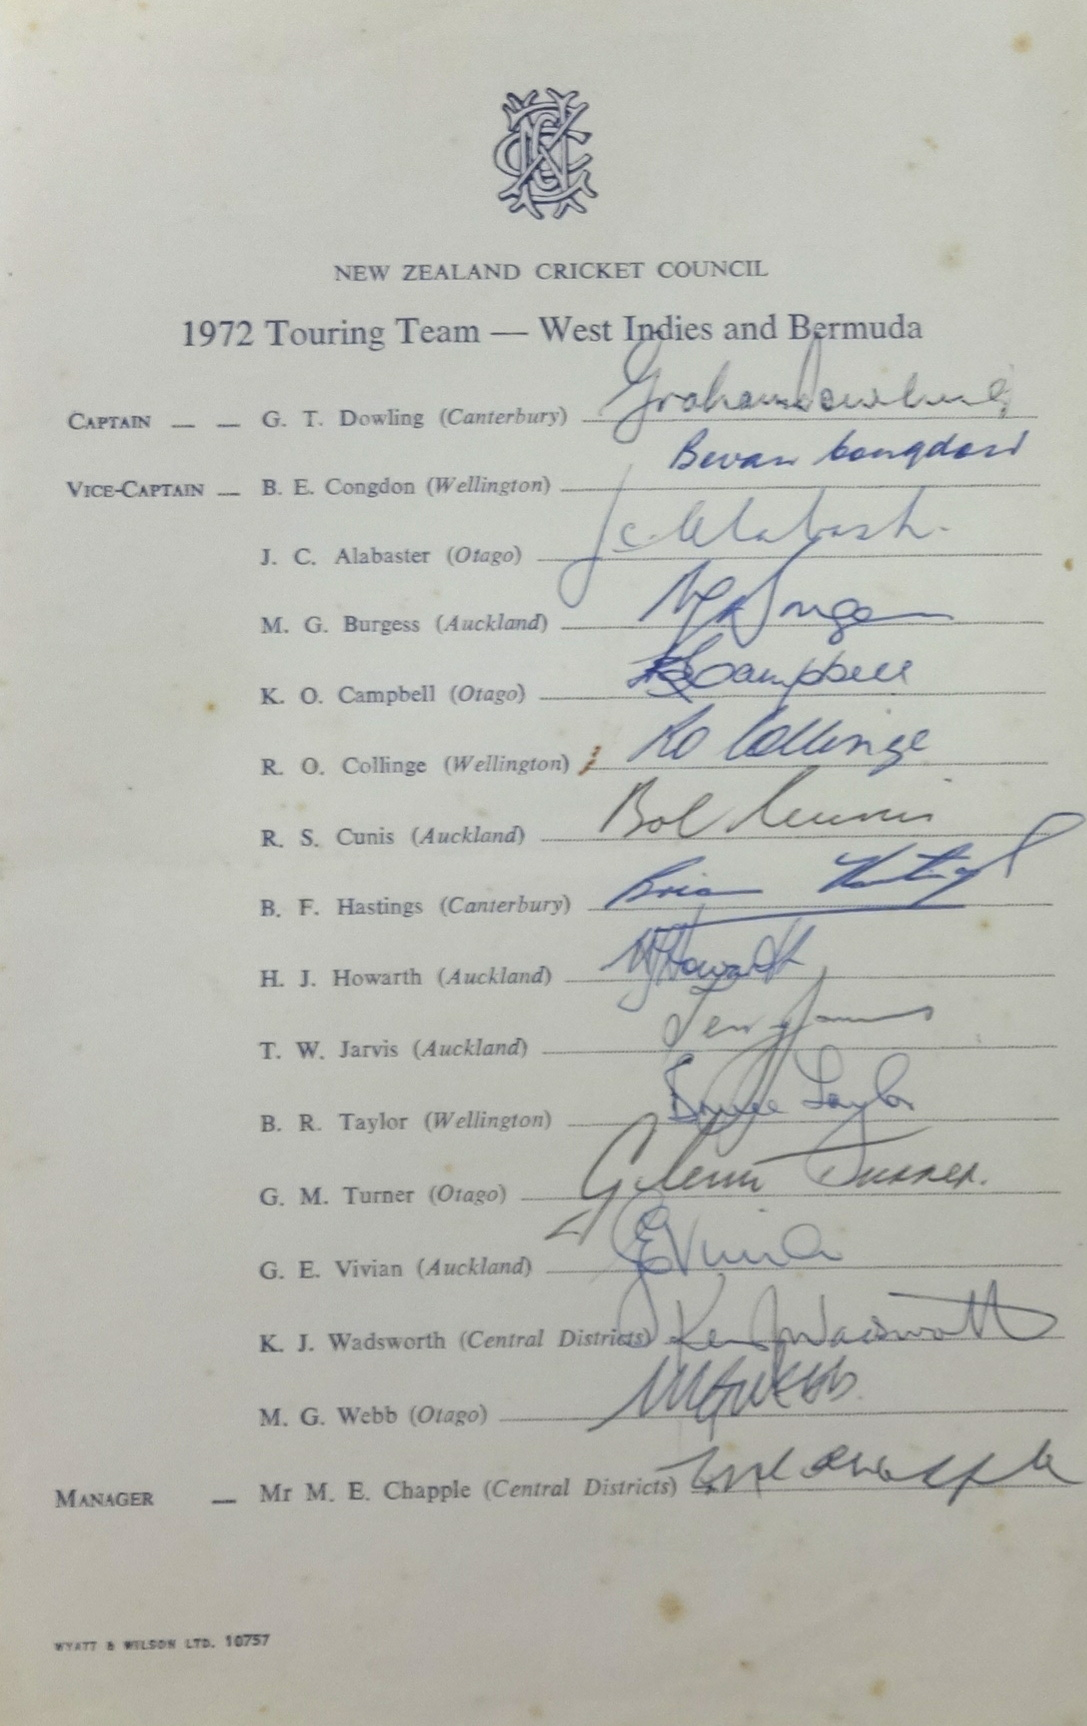 Lot 058 - Of Cricket interest, an original signed touring sheet of the 1972 New Zealand cricket tour of West